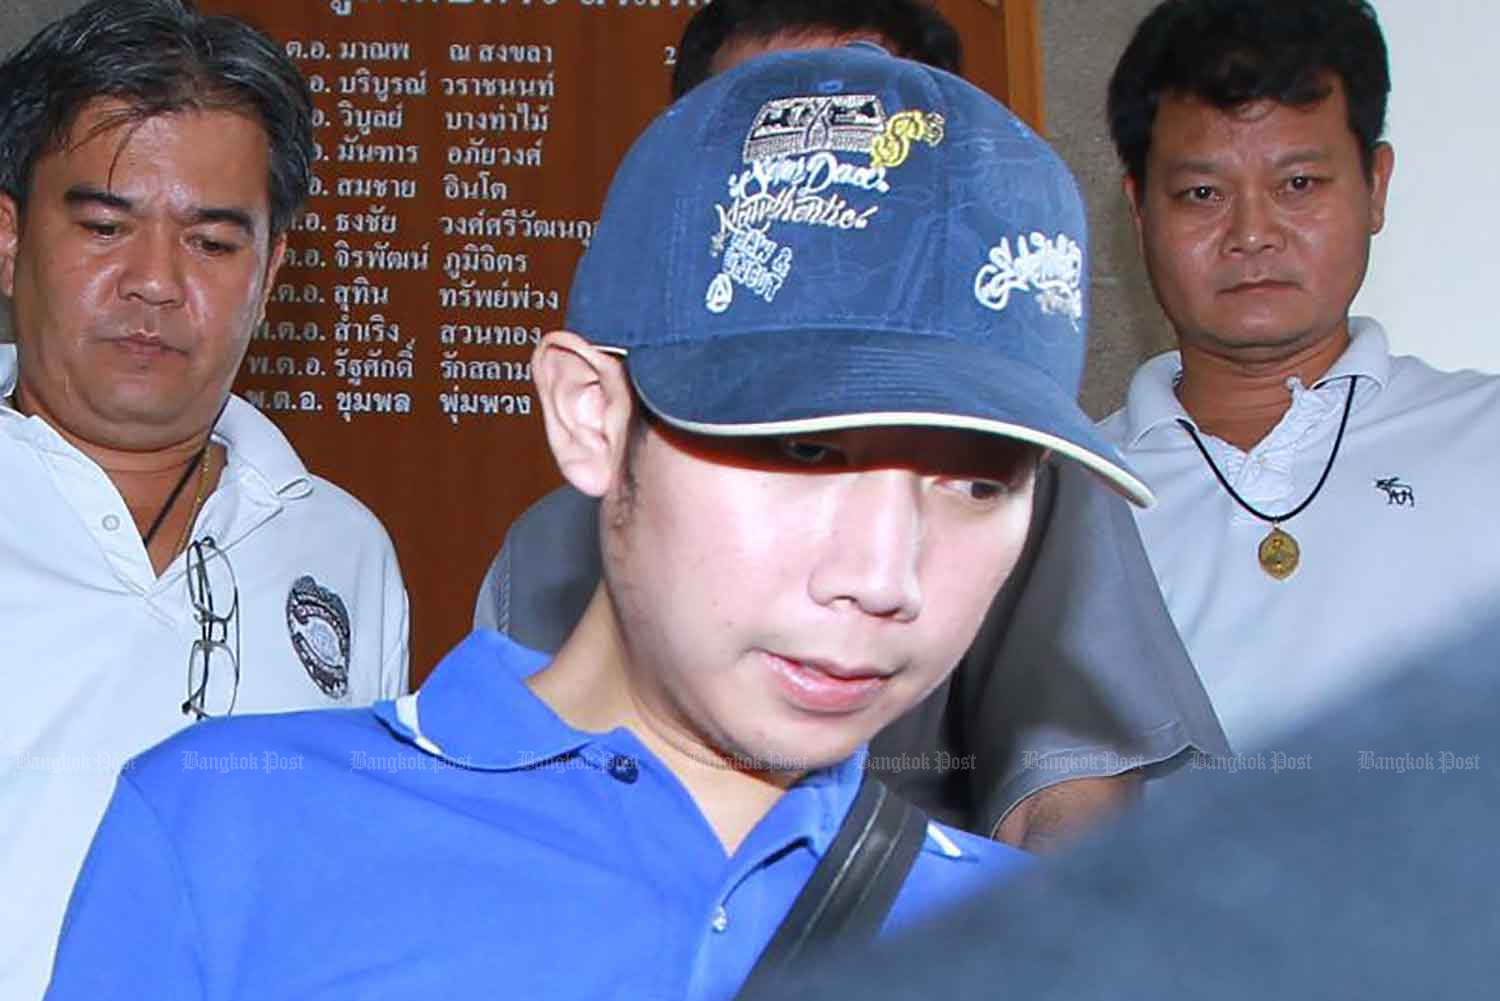 Vorayuth Yoovidhya, 27, known as Boss, is at the Thong Lor police station in Bangkok on Sept 3, 2012, after a black Ferrari ran into a motorcycle about 5.30am on Sukhumvit Soi 47. The motorcycle's rider, Pol Snr Sgt Maj Wichian Klanprasert, 48, of Thong Lor police station, was killed. (Photo: Somchai Poomlard)